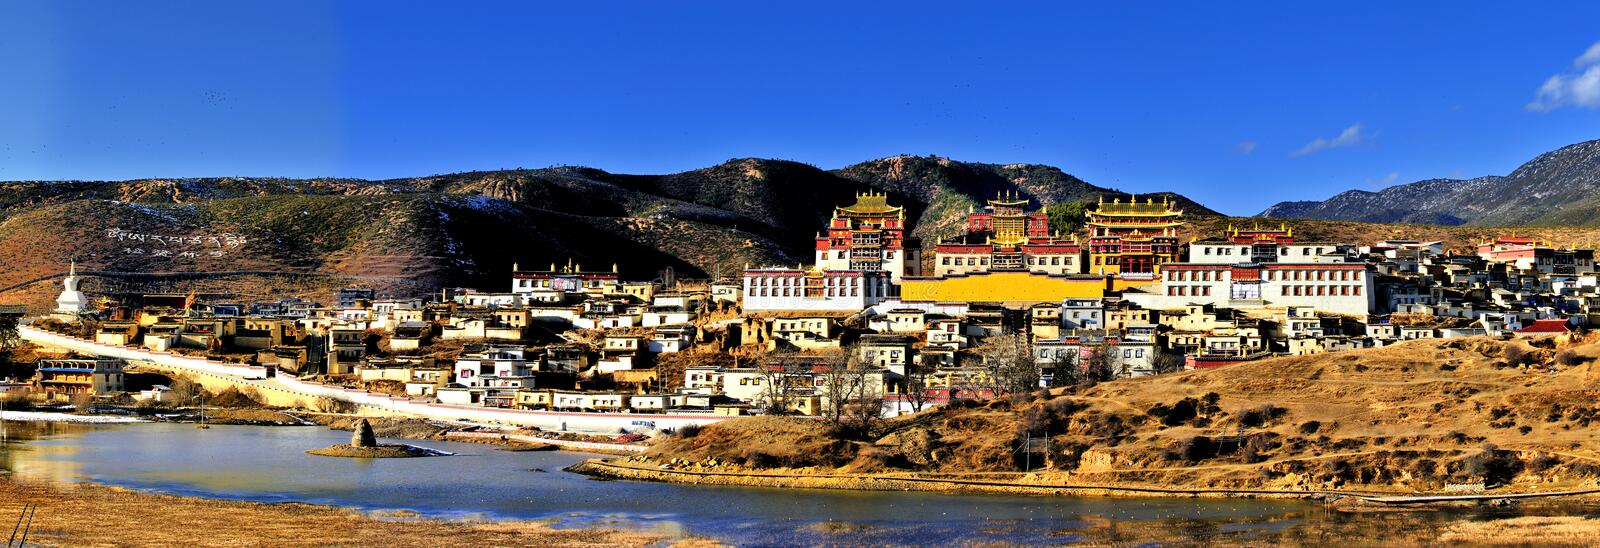 Shangri-La - Songzanlinsi. Tibetan Buddhist Temple, a temple library, located in the Shangri-La in Yunnan Province China royalty free stock image